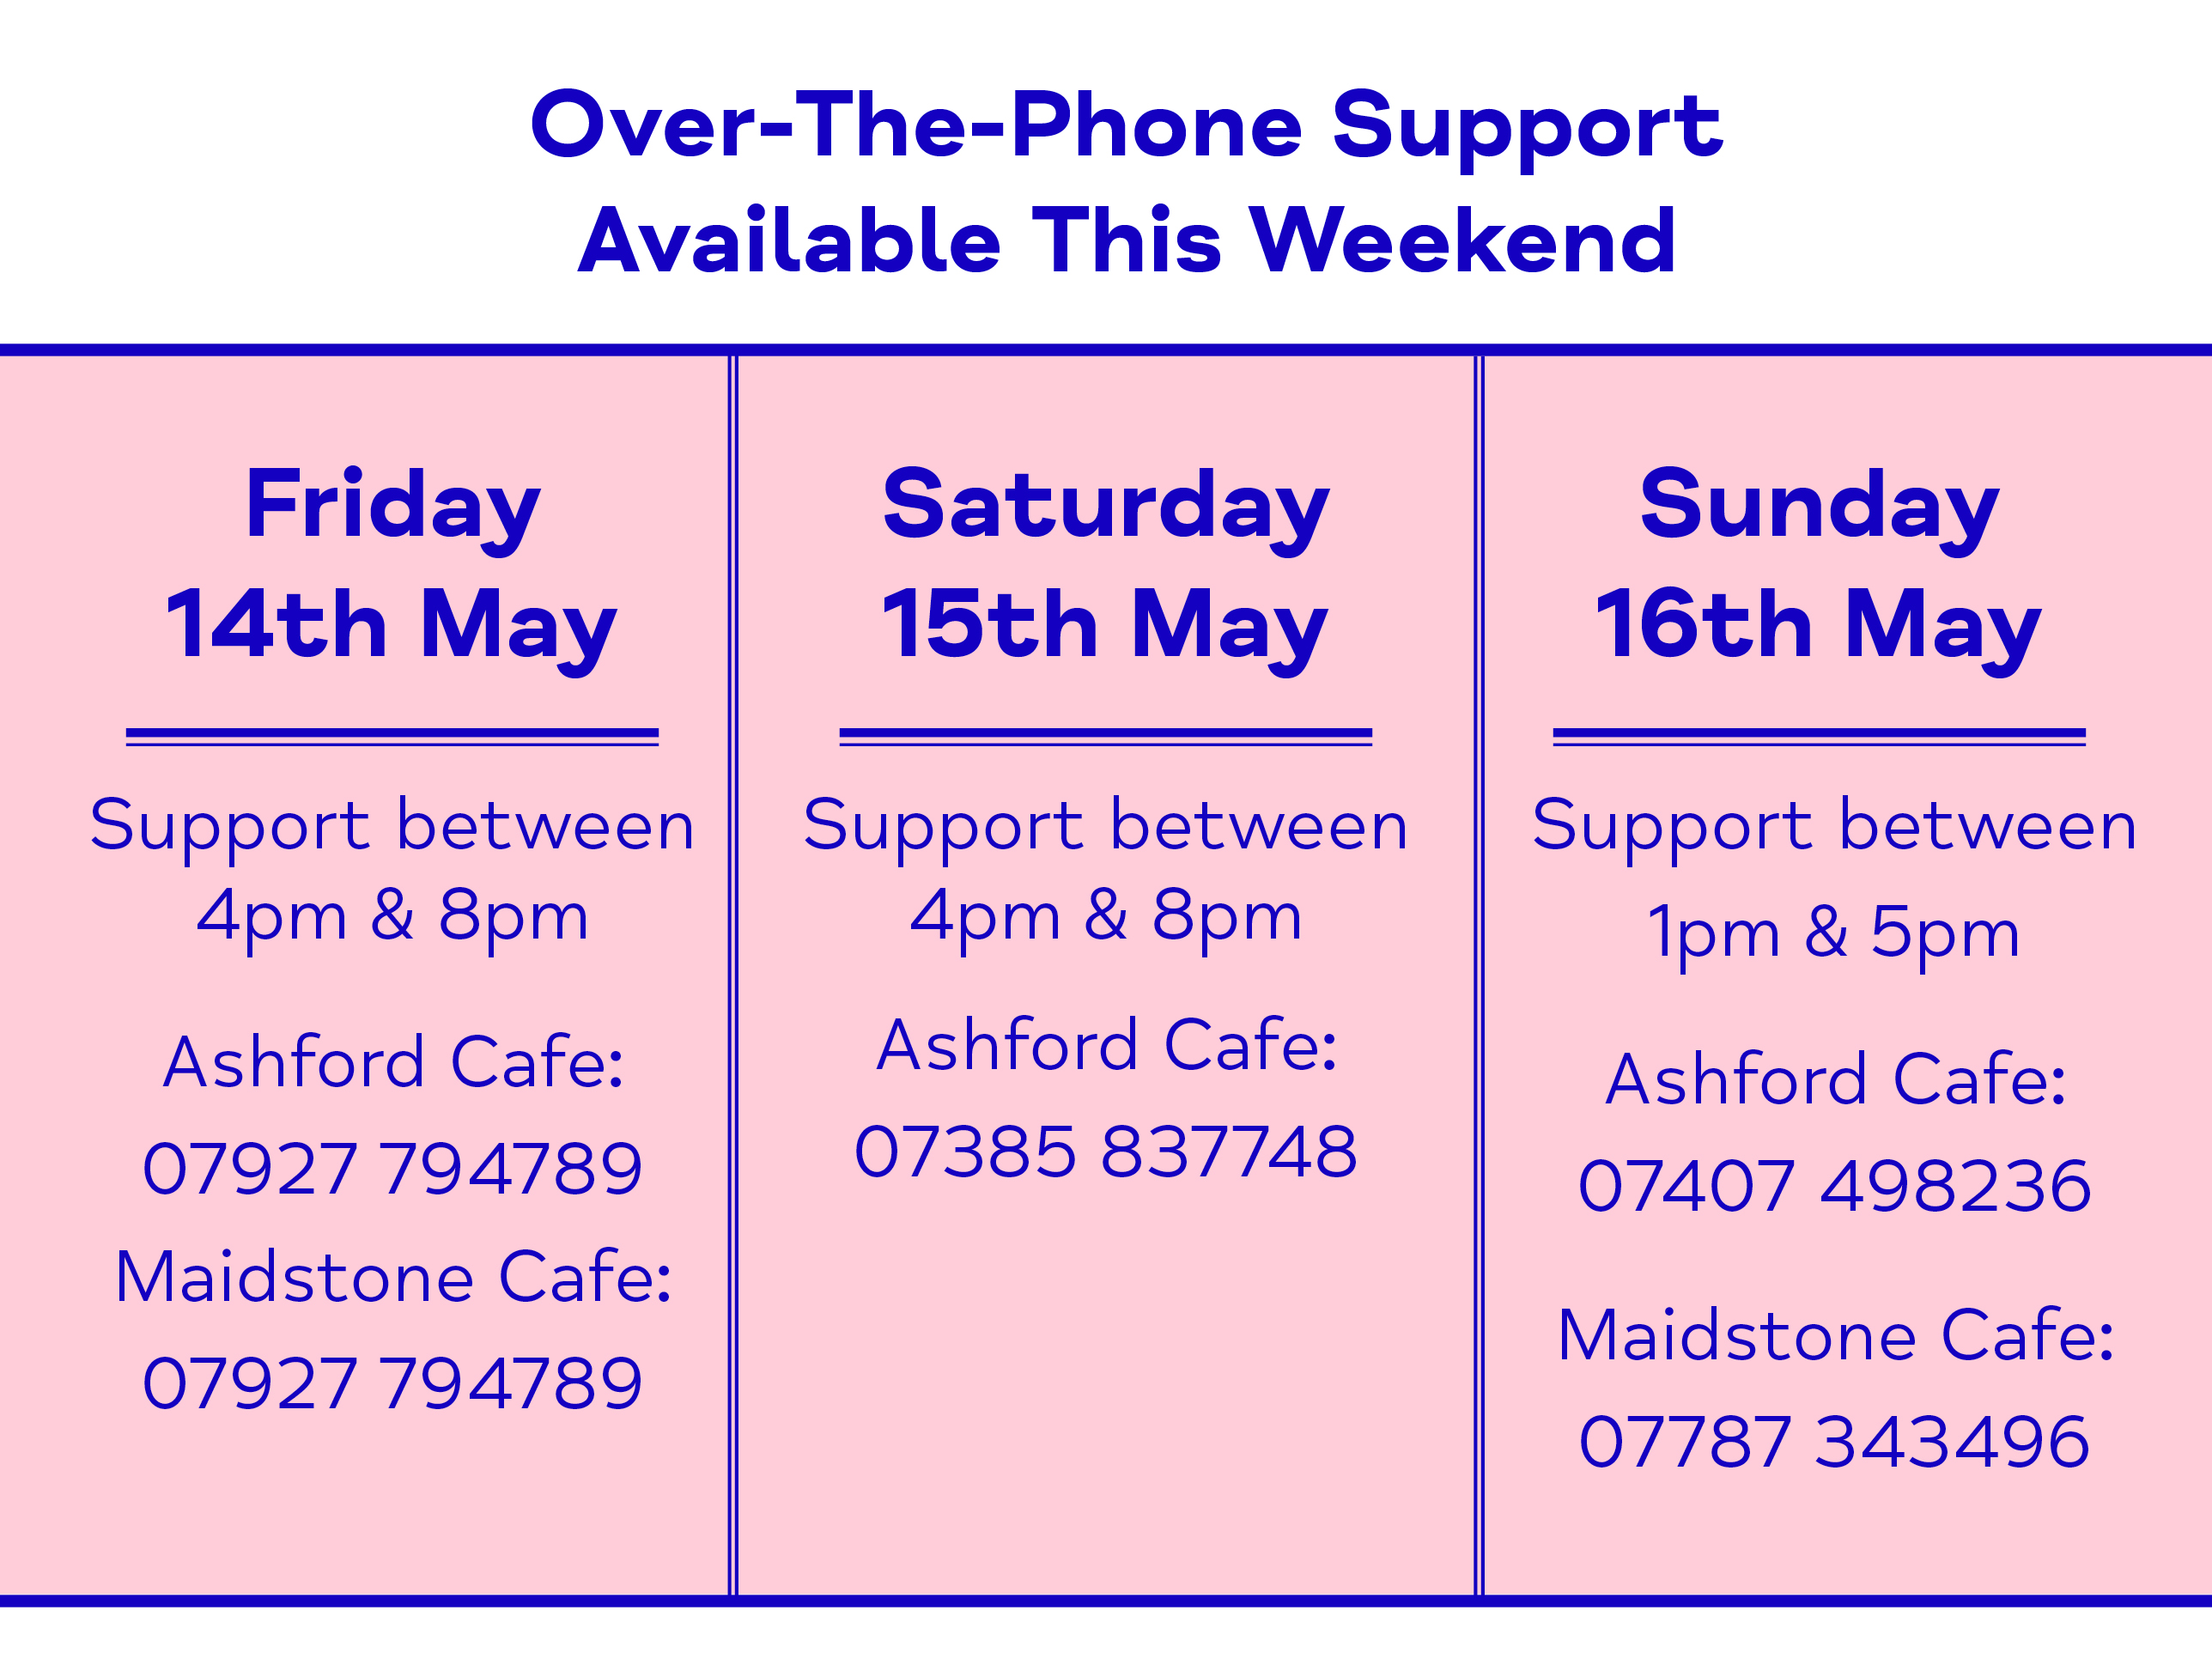 Over-The-Phone Support Available This Weekend - Friday 14th May. Support between 4pm & 8pm Ashford Cafe: 07927 794789 Maidstone Cafe: 07927 794789. Saturday 15th May. Support between 4pm & 8pm Ashford Cafe: 07385 837748. Sunday 16th May. Support between 1pm & 5pm Ashford Cafe: 07407 498236 Maidstone Cafe: 07787 343496.